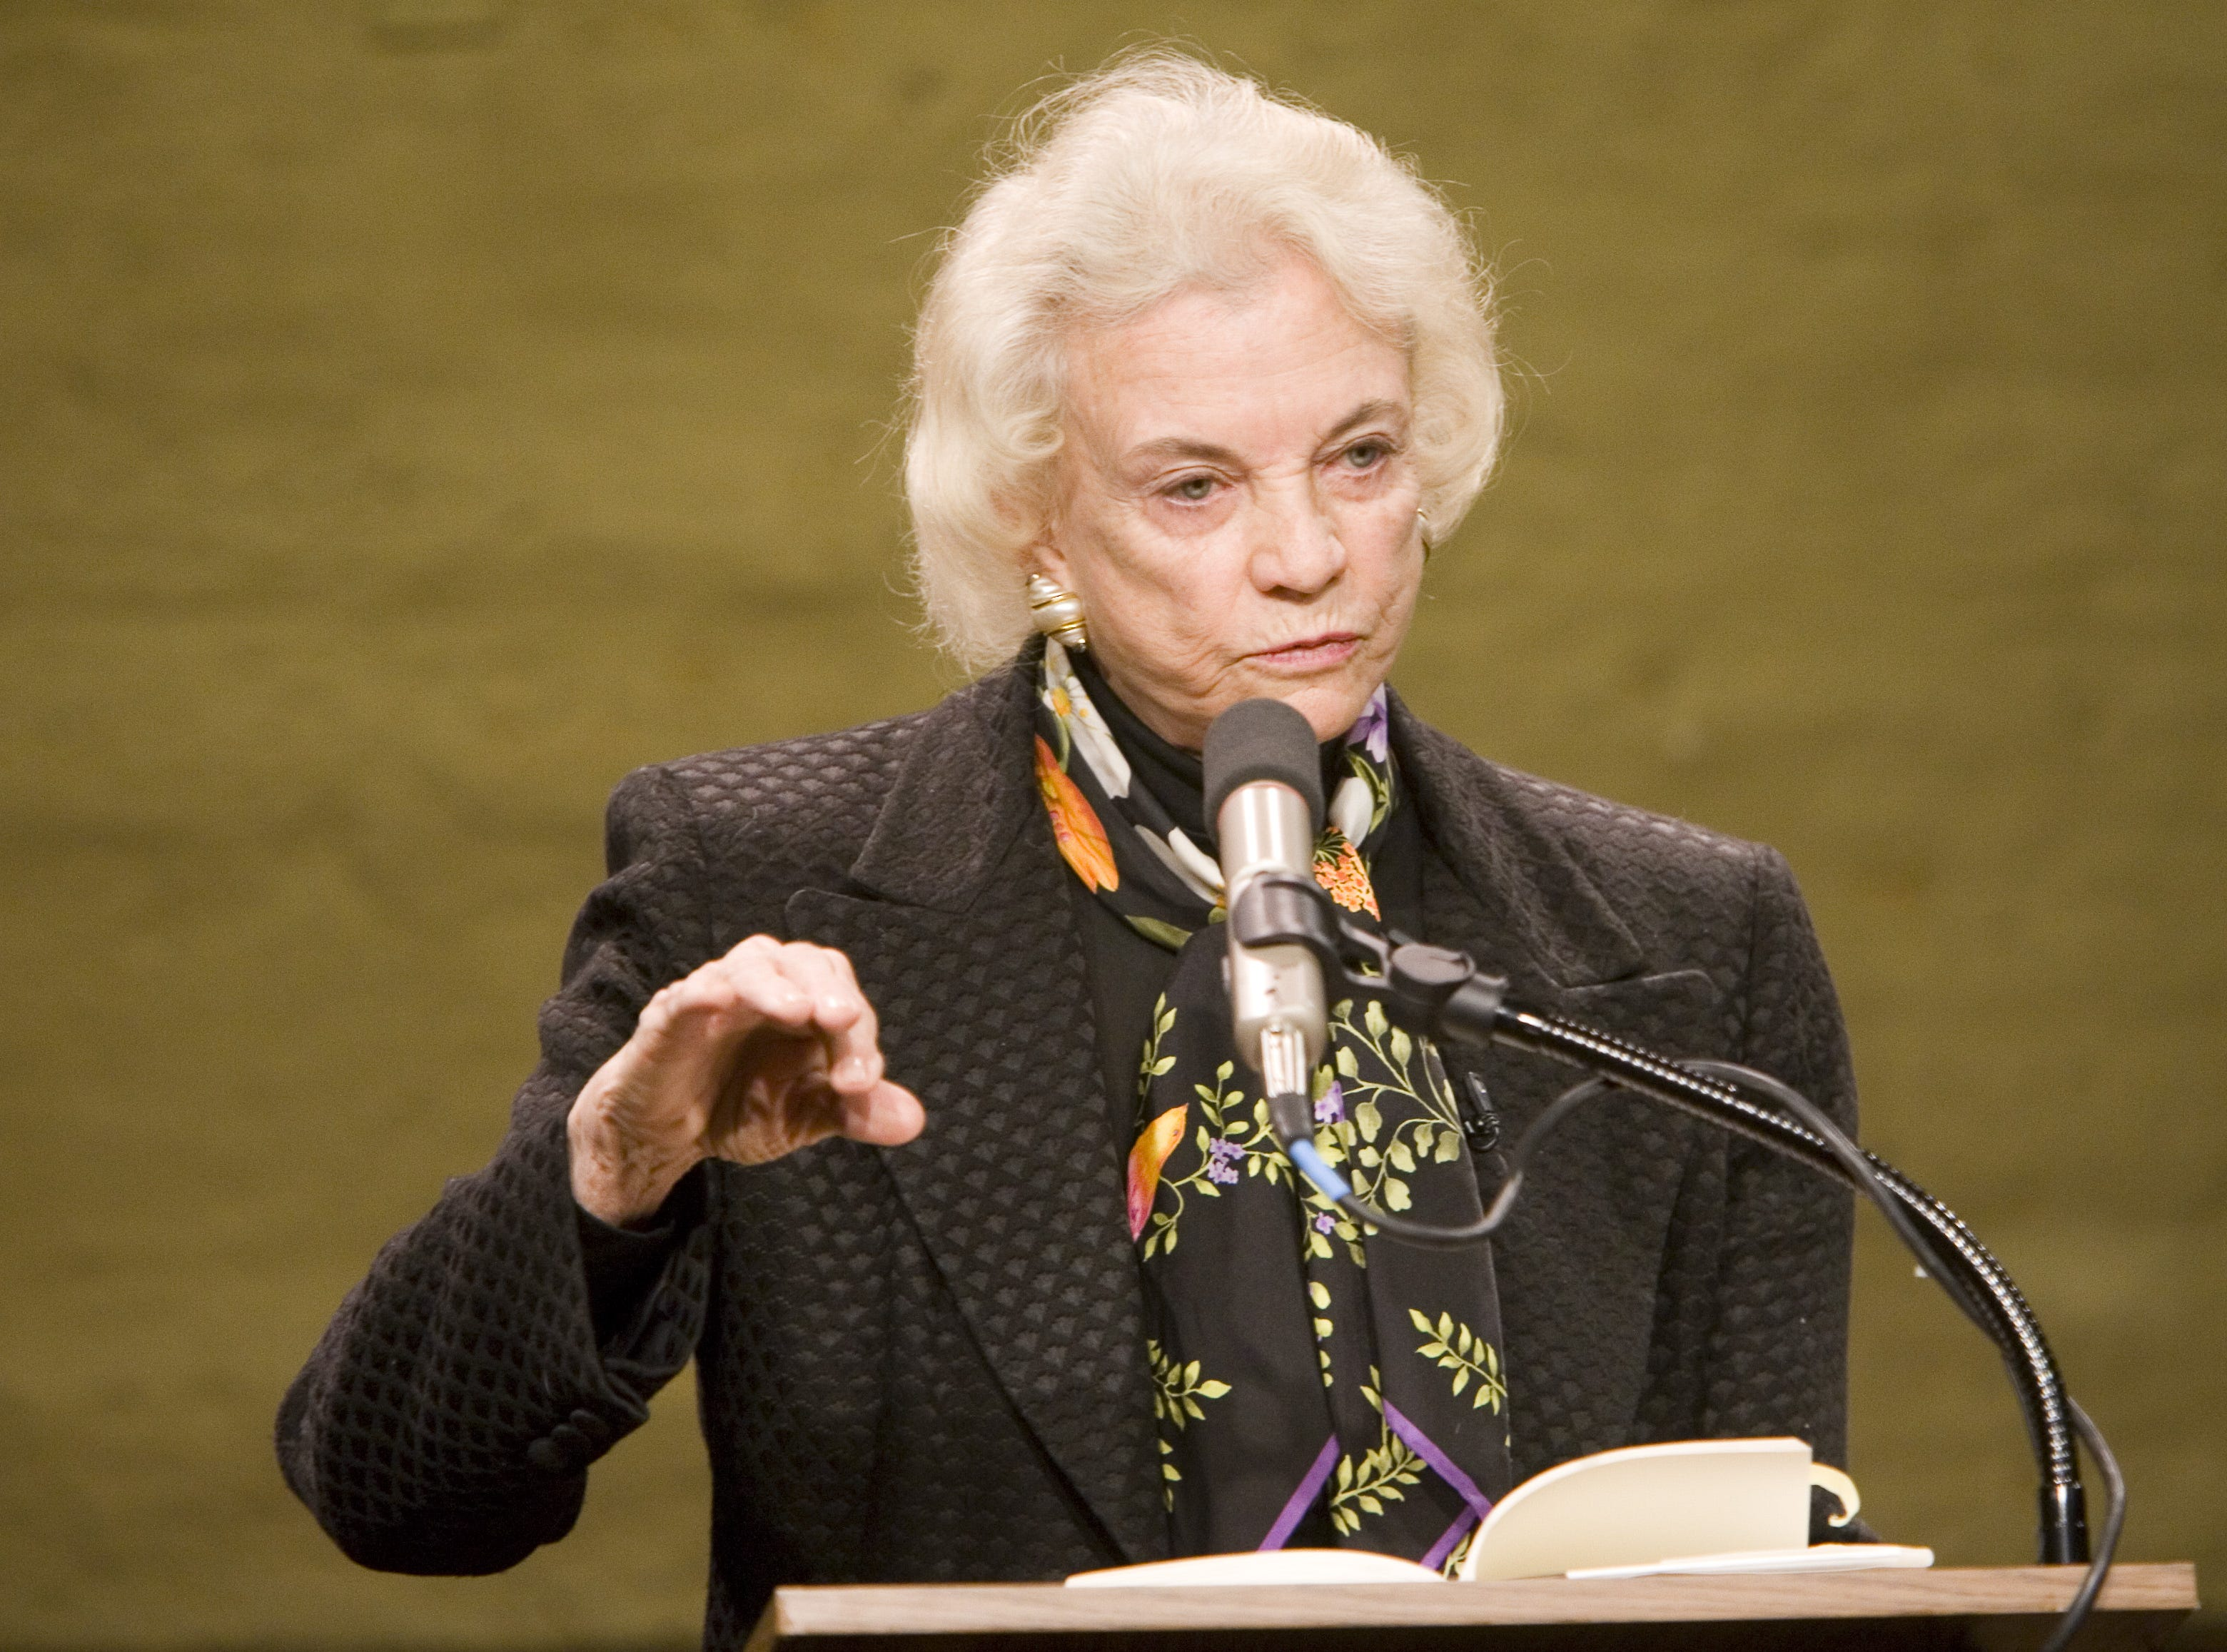 Retired Supreme Court Justice Sandra Day O'Connor speaks at the Kerr Cultural Center in Scottsdale on Feb. 1, 2006.